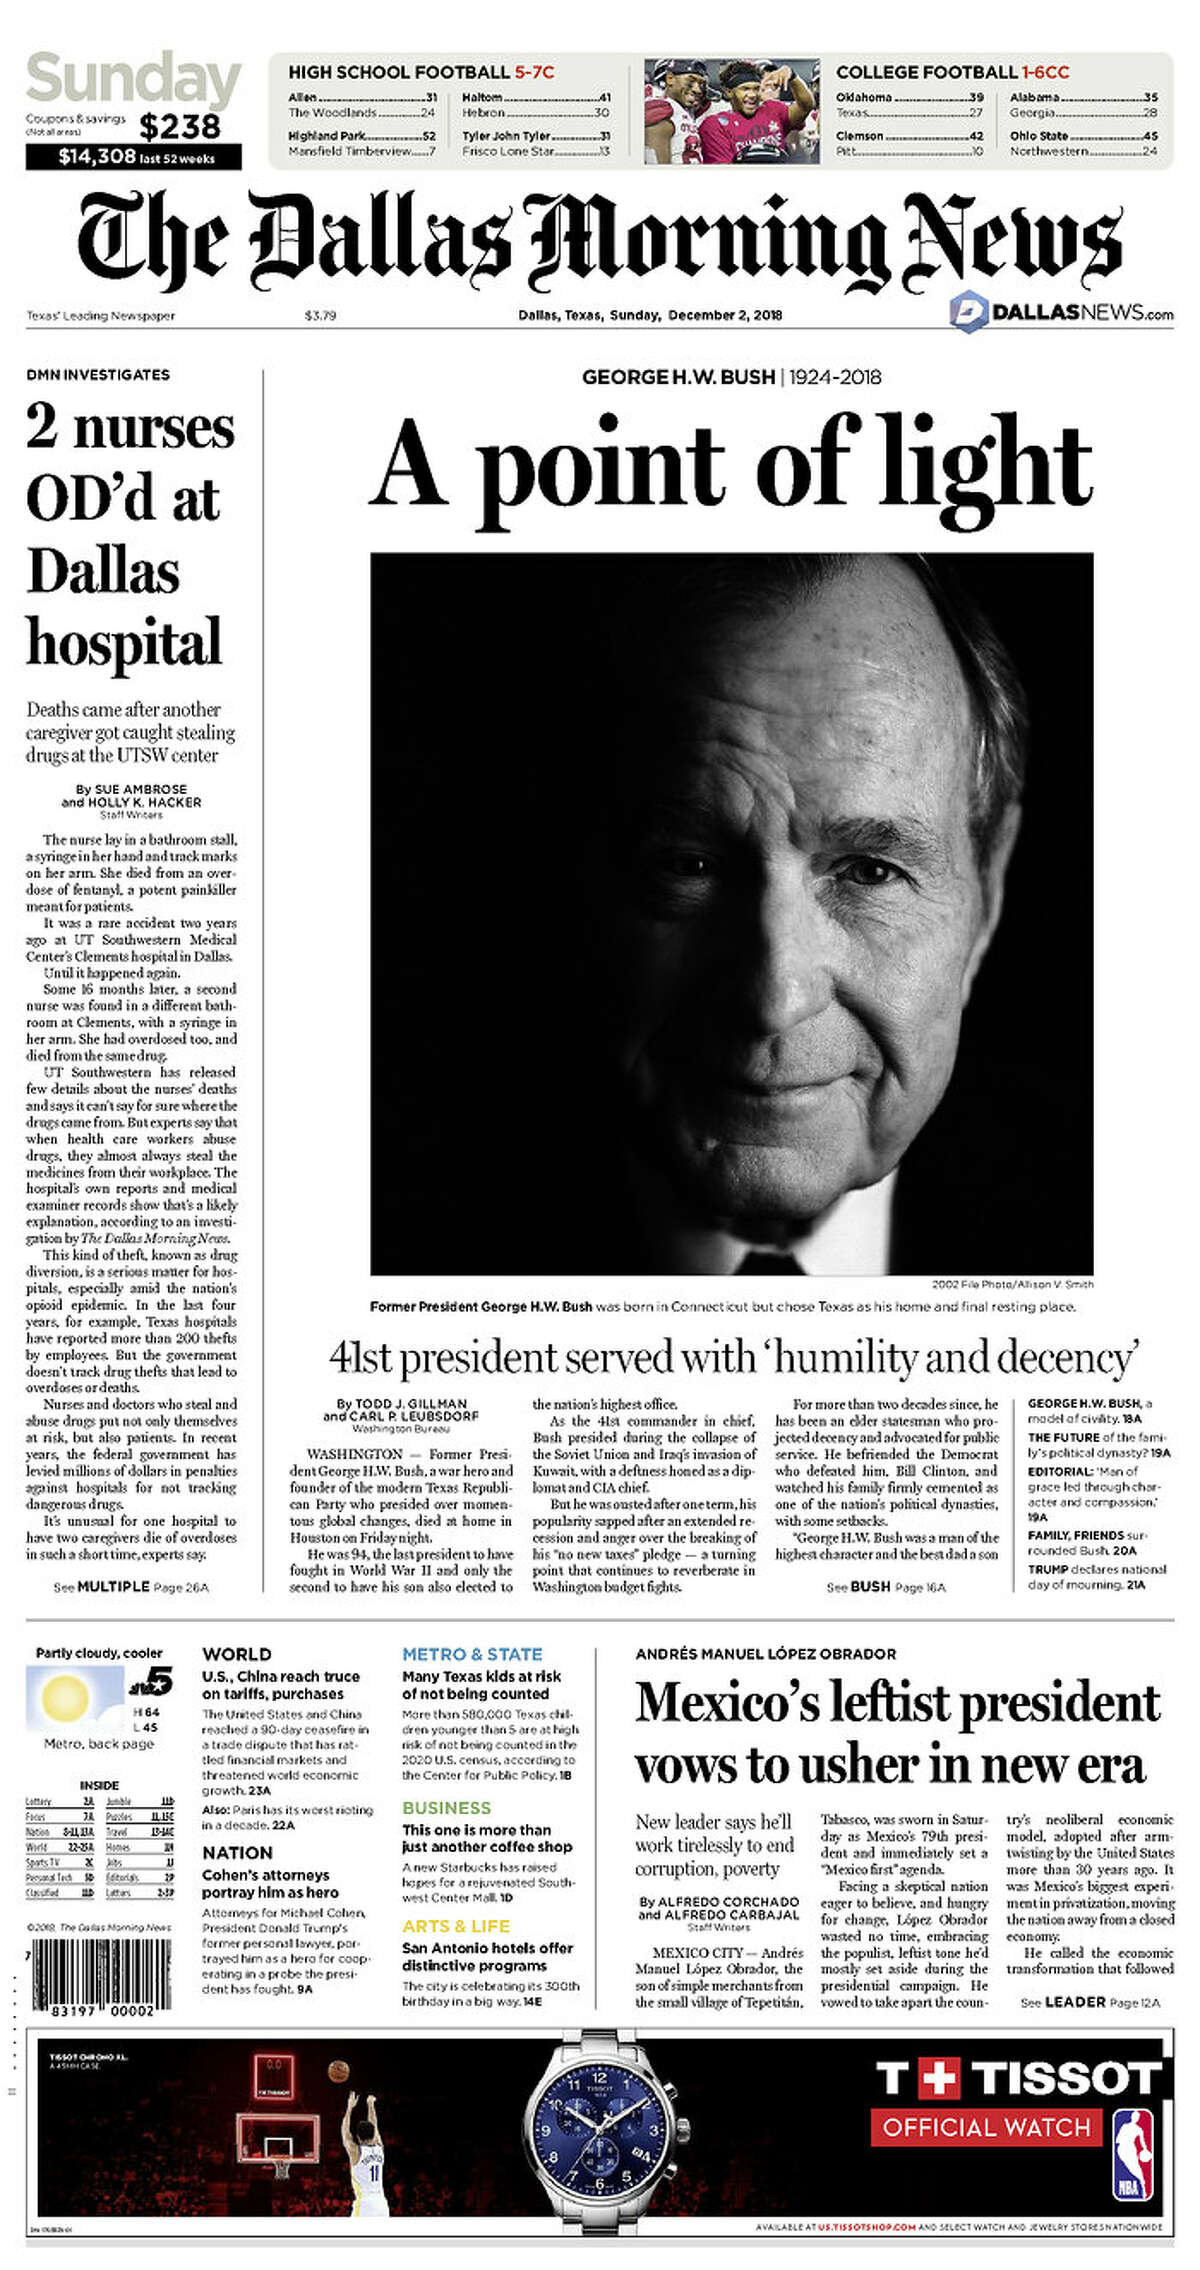 The front page of The Dallas Morning News, Sunday, Dec. 2, 2018 in Houston.